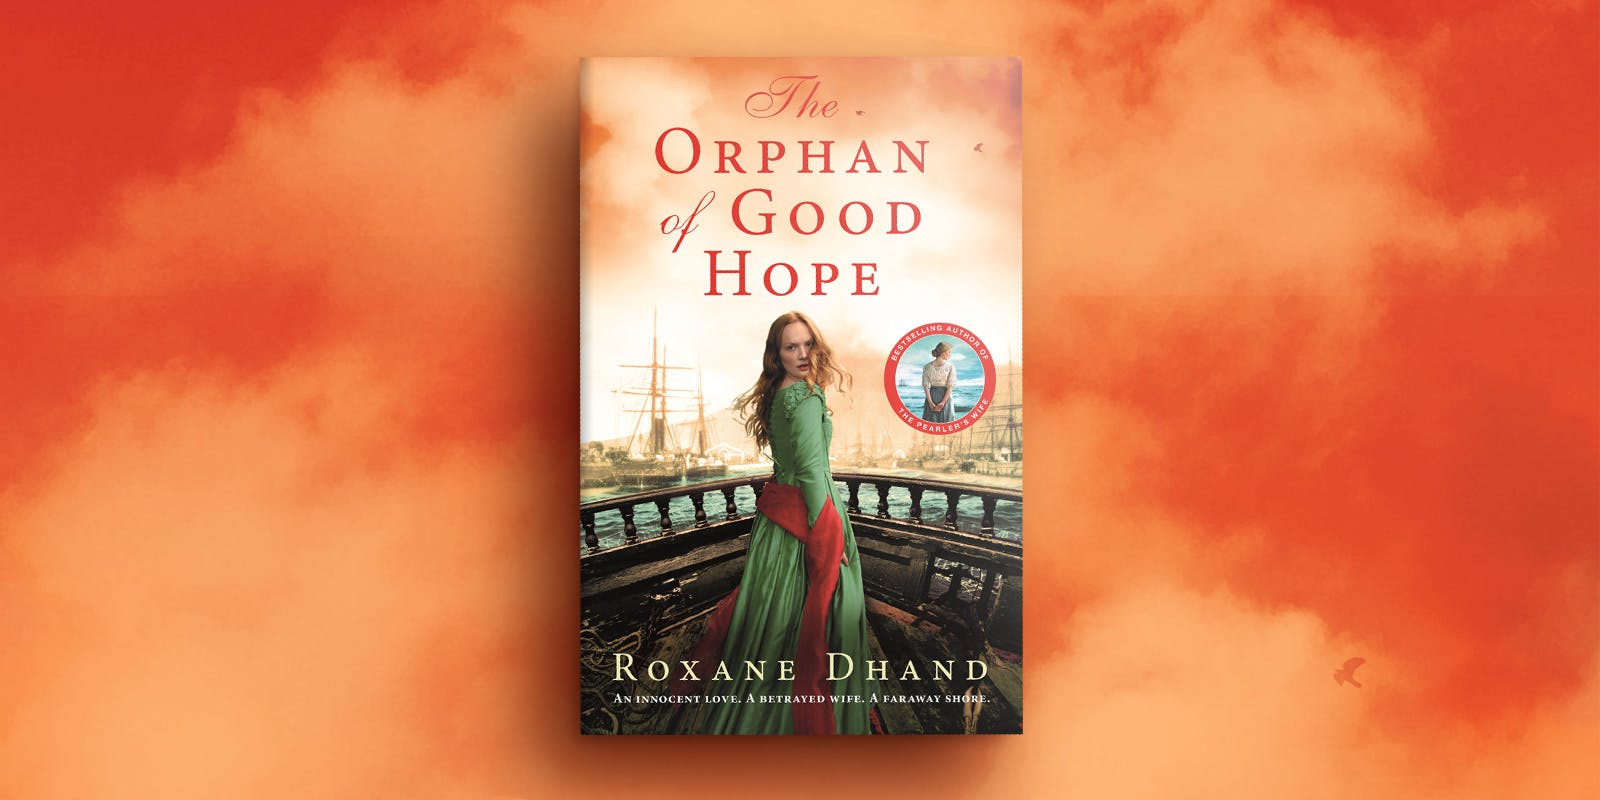 Researching The Orphan of Good Hope